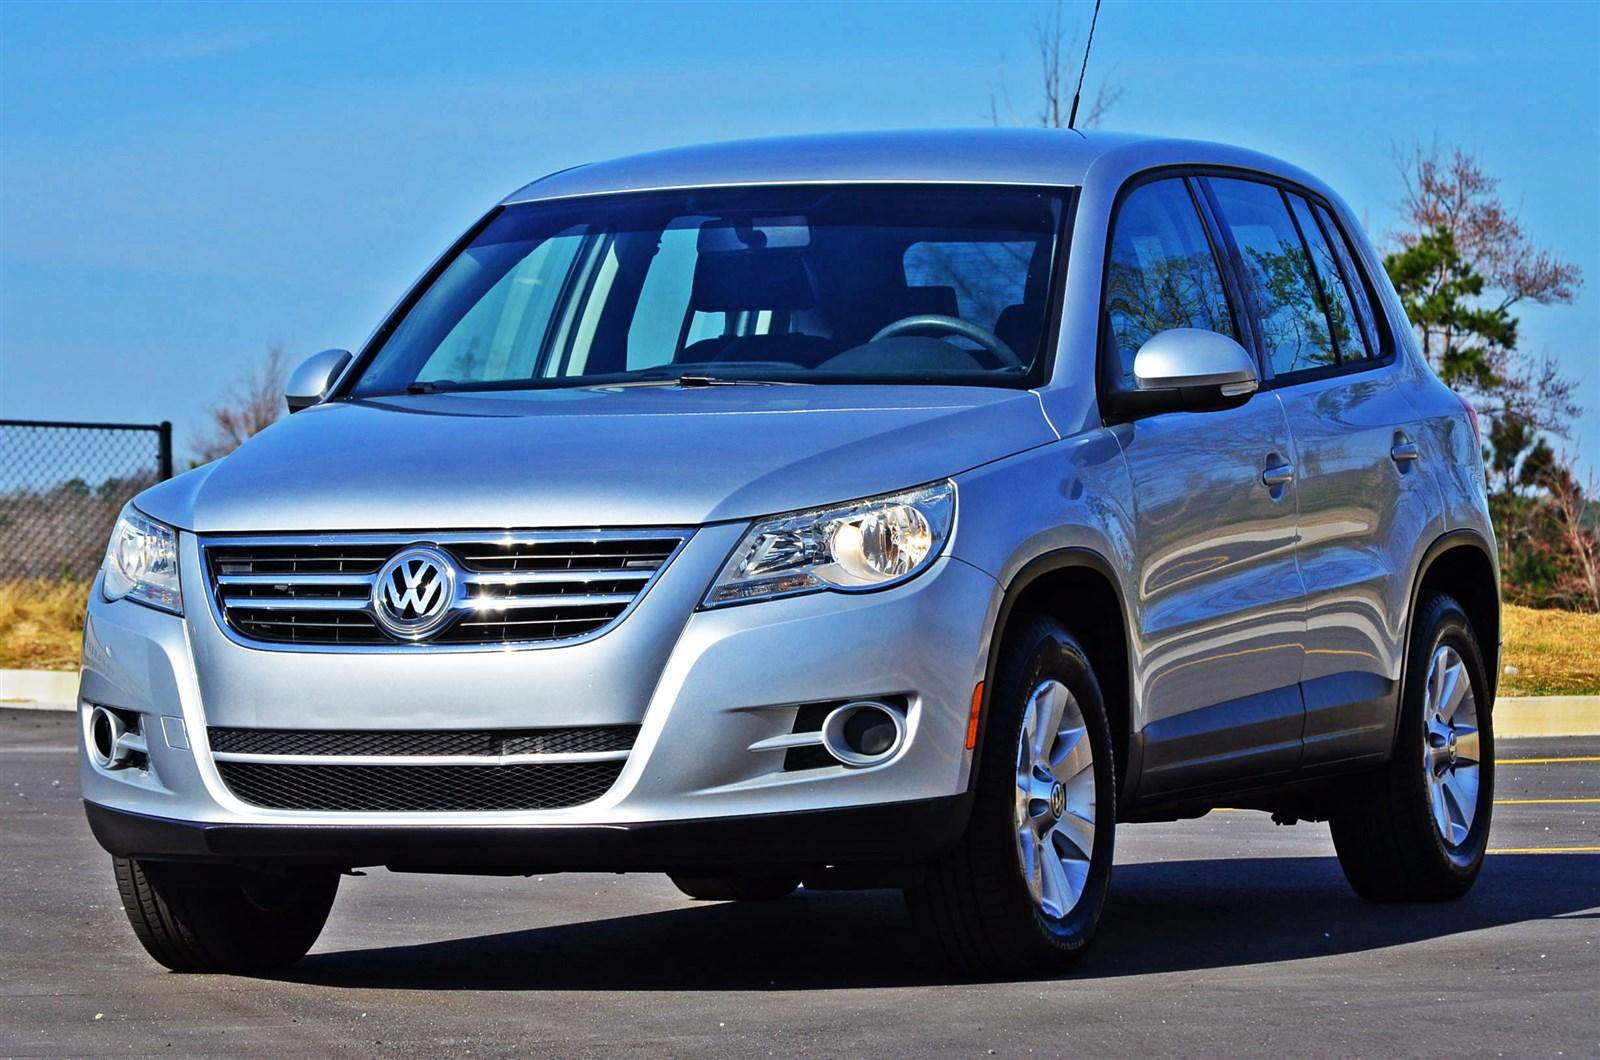 sale car island new kings city for york staten used awd brooklyn ny queens in tiguan volkswagen available jersey wolfsburg